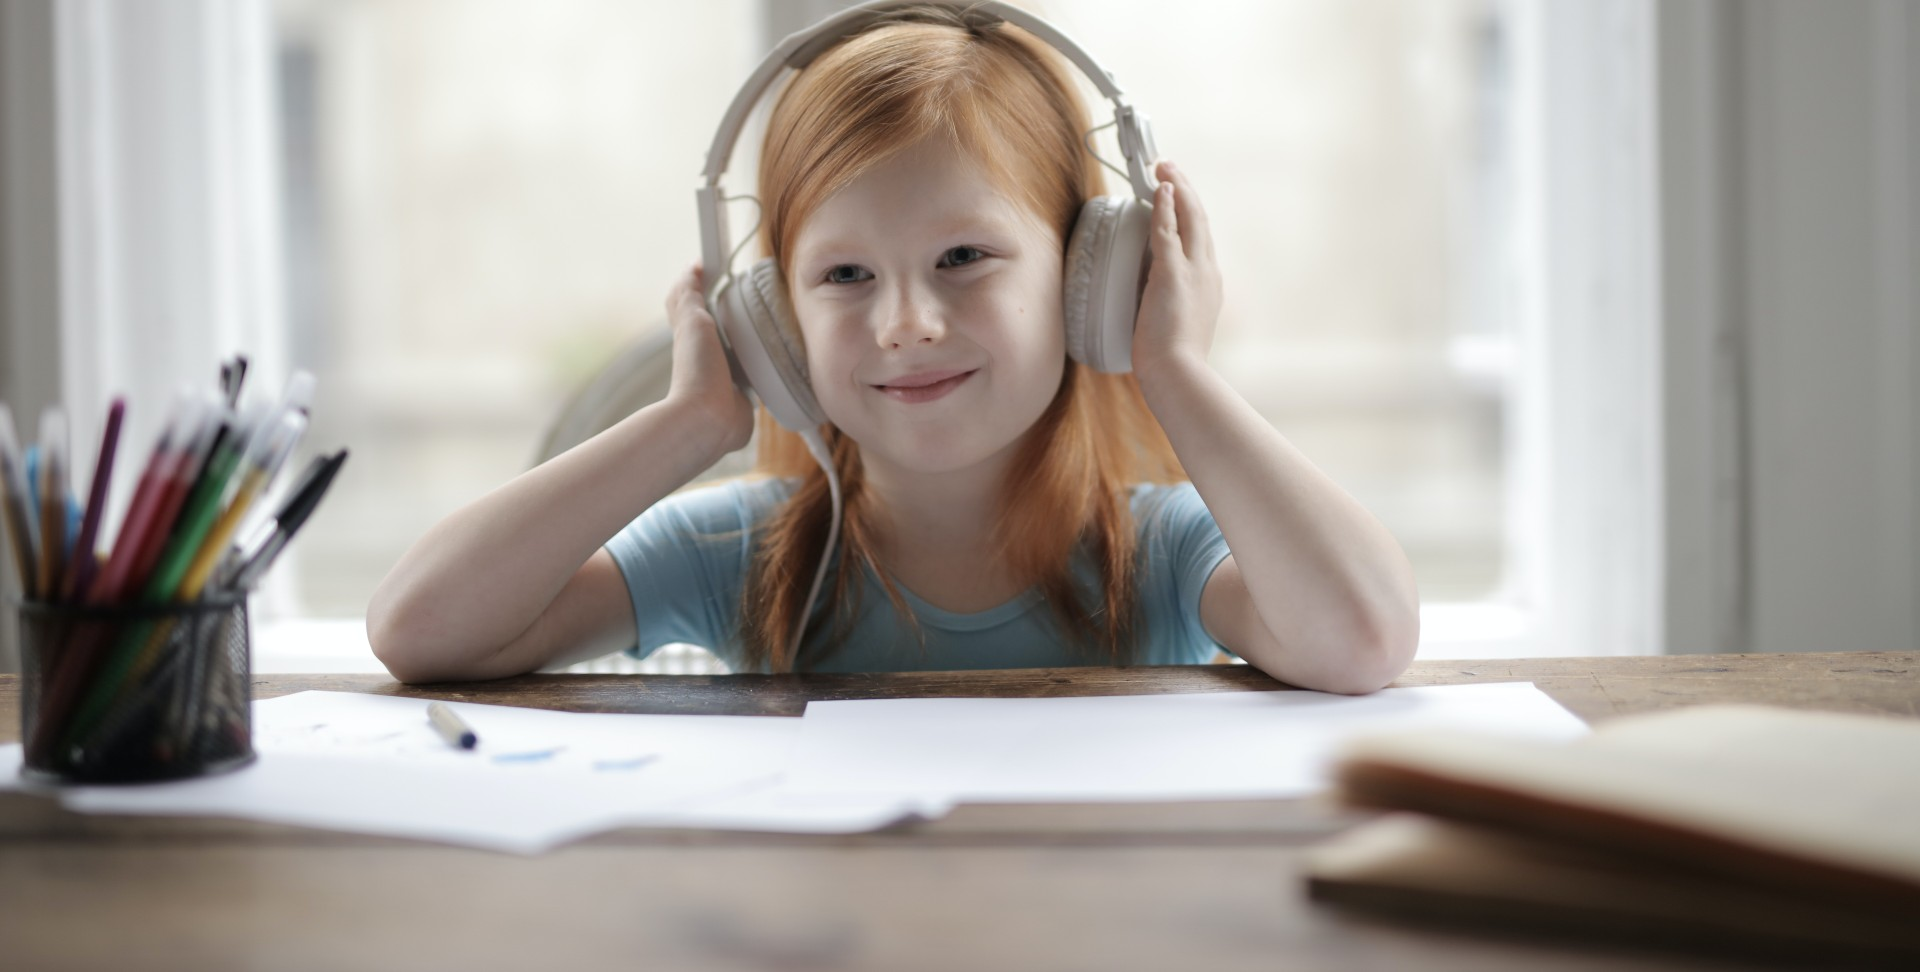 Kids Audio Landscapes – Podcasts, Smart Speakers, & Audio Books